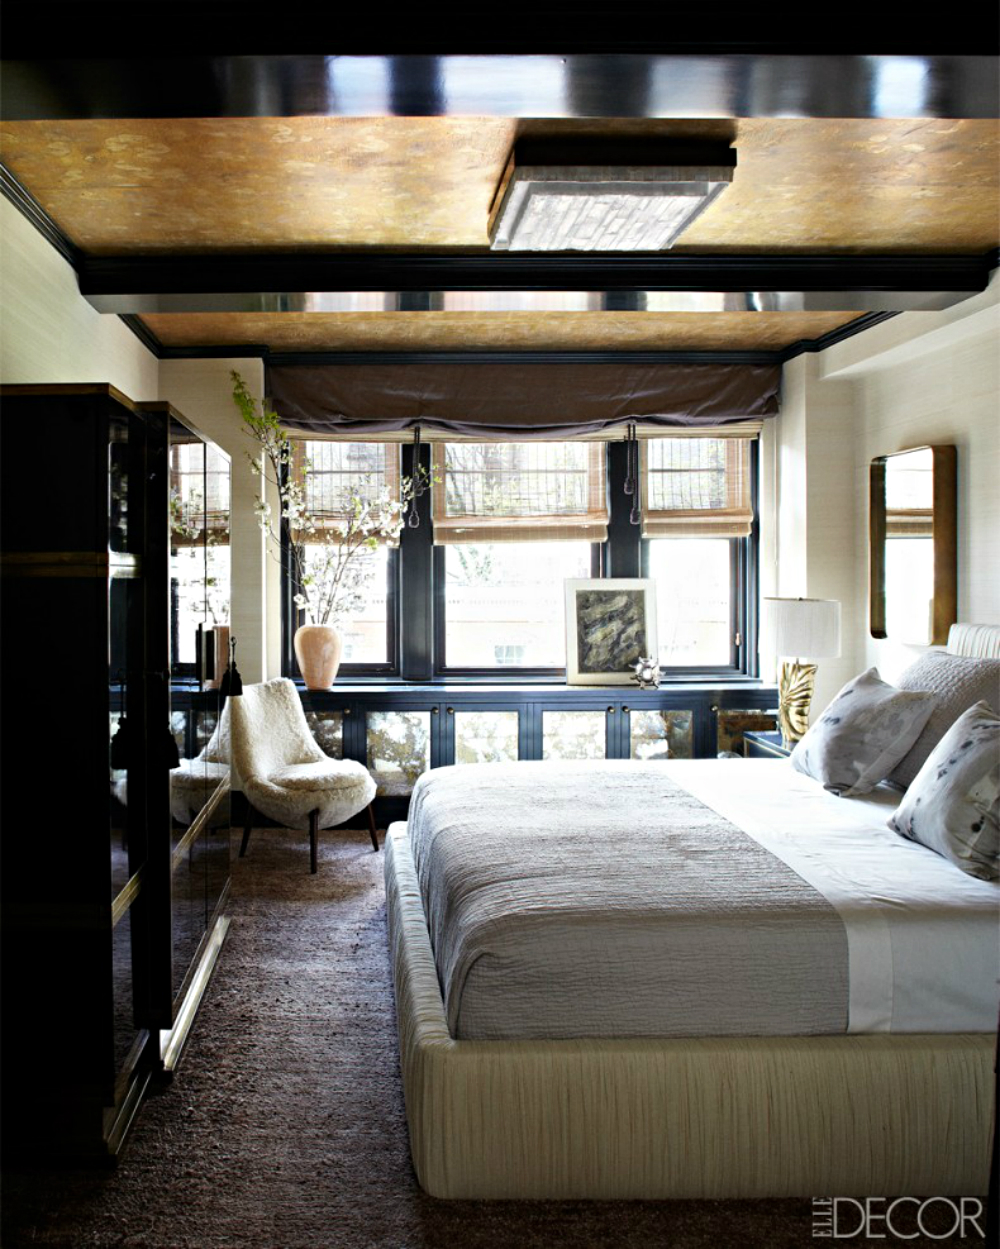 5 celebrity bedrooms that will blow your mind for Celebrity bedroom ideas